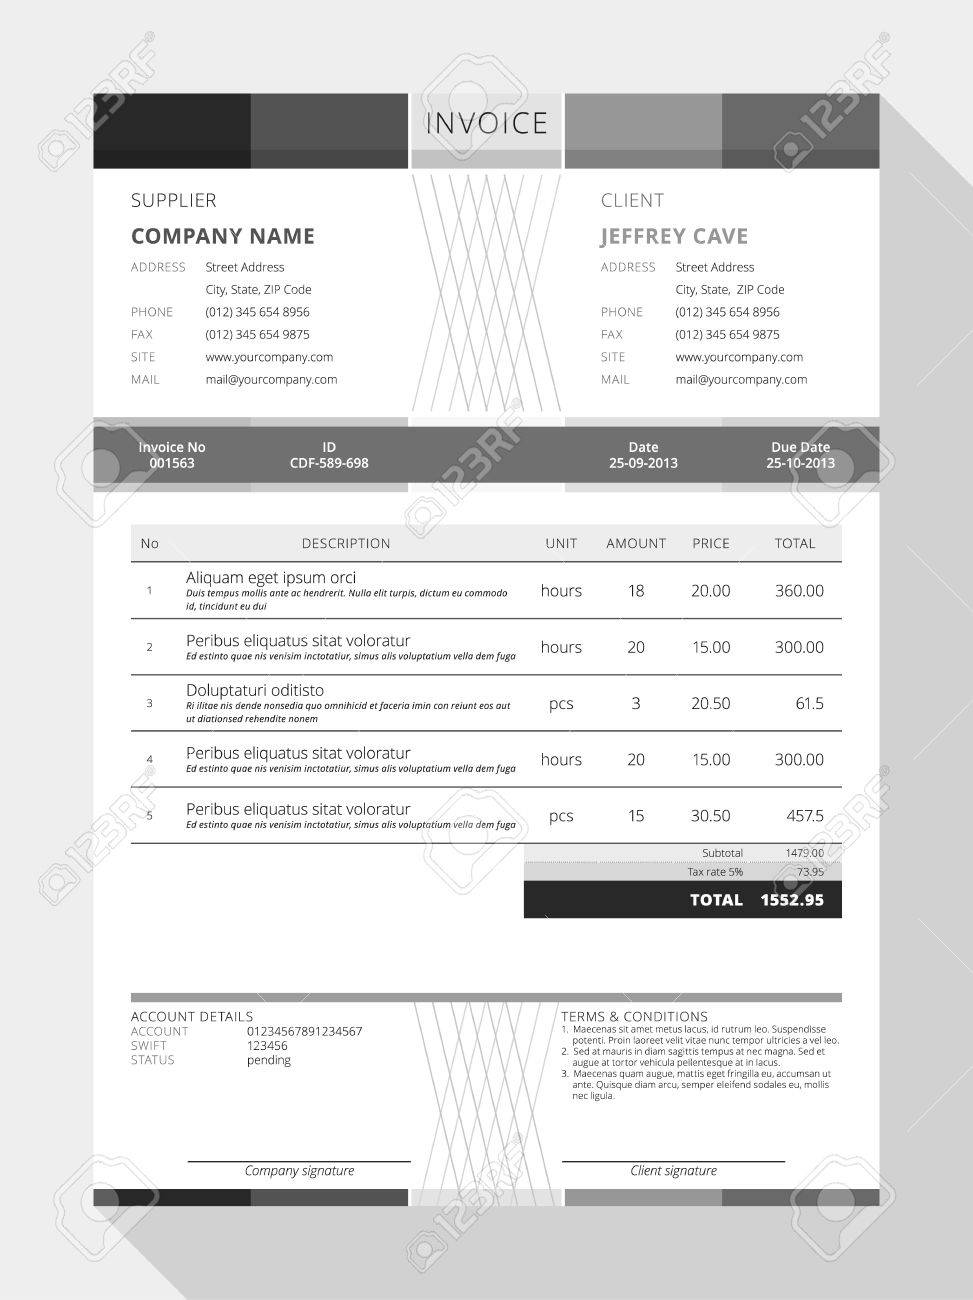 Reliefworkersus  Pleasant Design An Invoice  Professional Graphic Design Invoice  With Exquisite Vector Customizable Invoice Form Template Design Vector   Design An Invoice With Comely Invoice Meaning Also Online Invoicing In Addition Lps Invoice Management And Proforma Invoice As Well As Contractor Invoice Template Additionally What Is An Invoice Number From Happytomco With Reliefworkersus  Exquisite Design An Invoice  Professional Graphic Design Invoice  With Comely Vector Customizable Invoice Form Template Design Vector   Design An Invoice And Pleasant Invoice Meaning Also Online Invoicing In Addition Lps Invoice Management From Happytomco